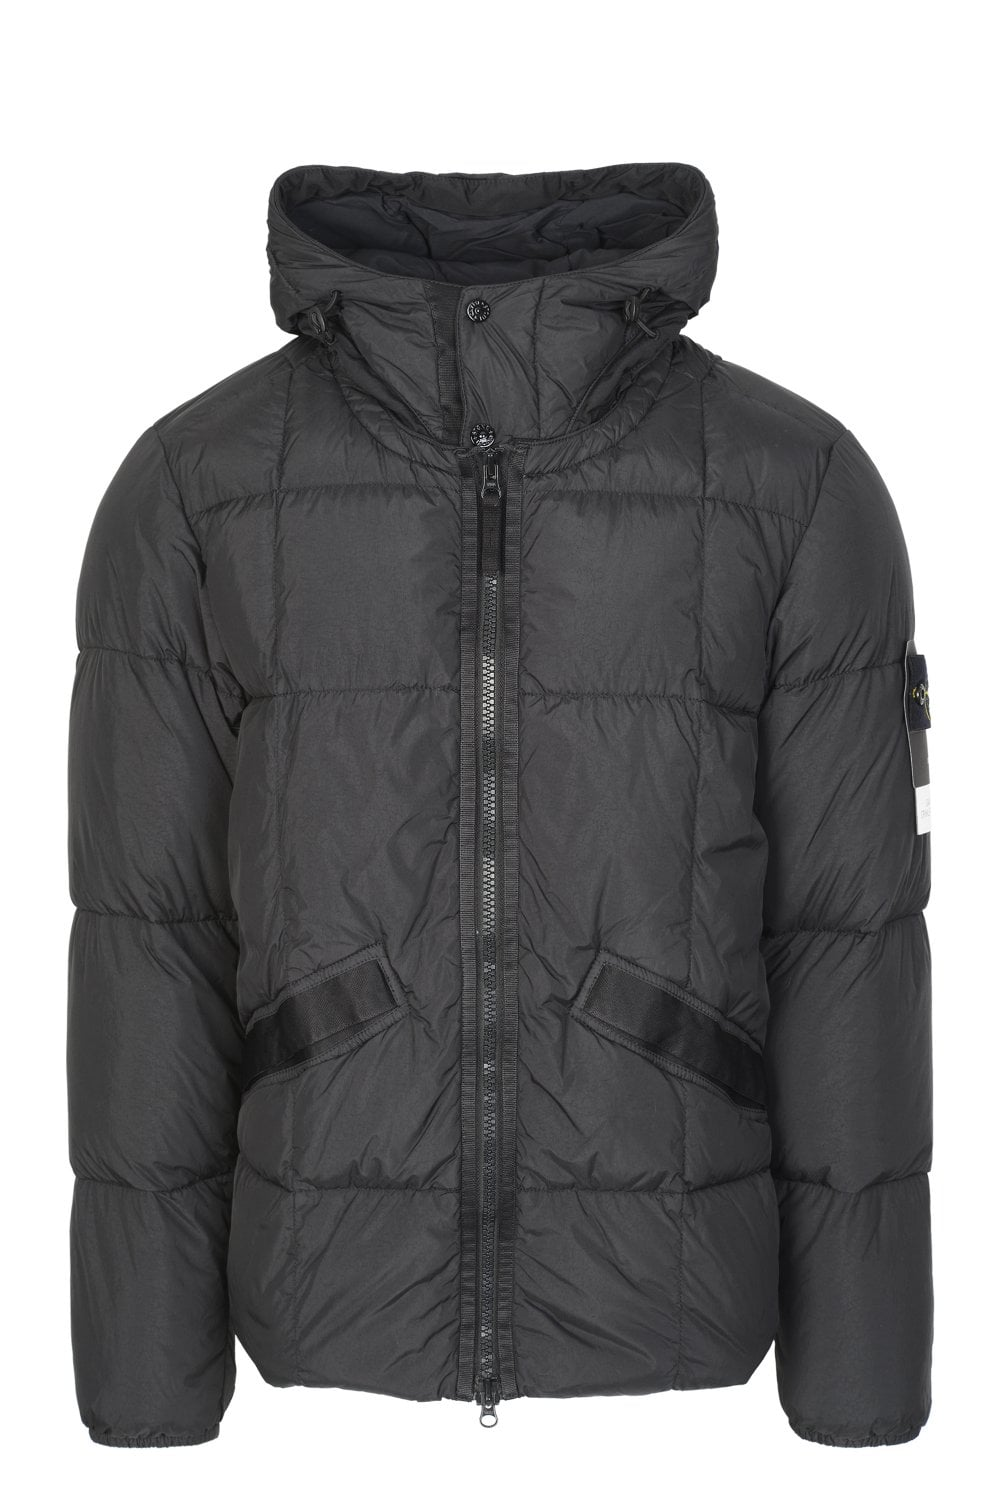 688c55cb0 Crinkle Reps Quilted Coat